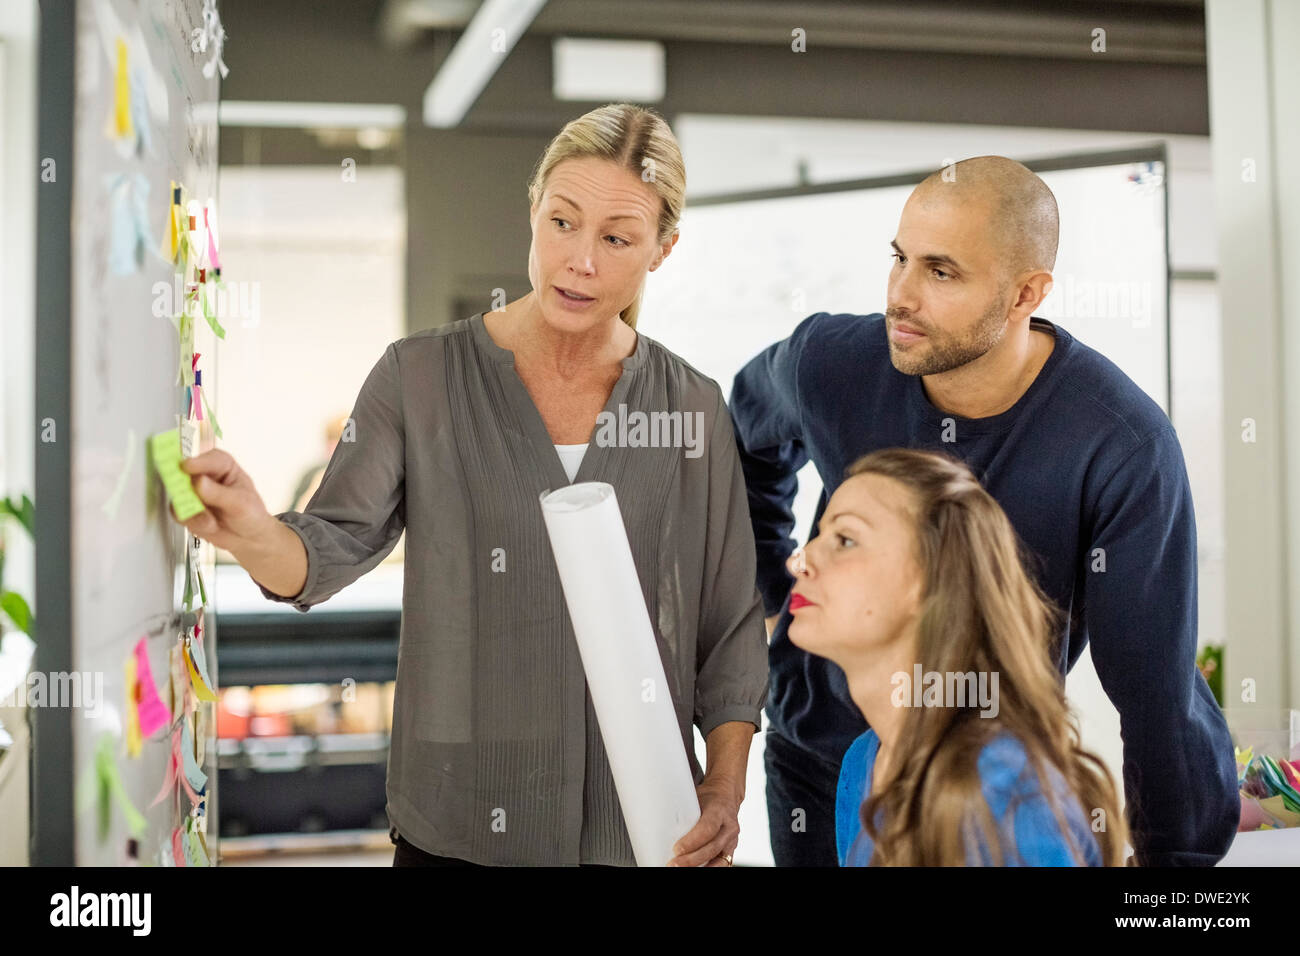 Business people discussing about reminder in creative office - Stock Image